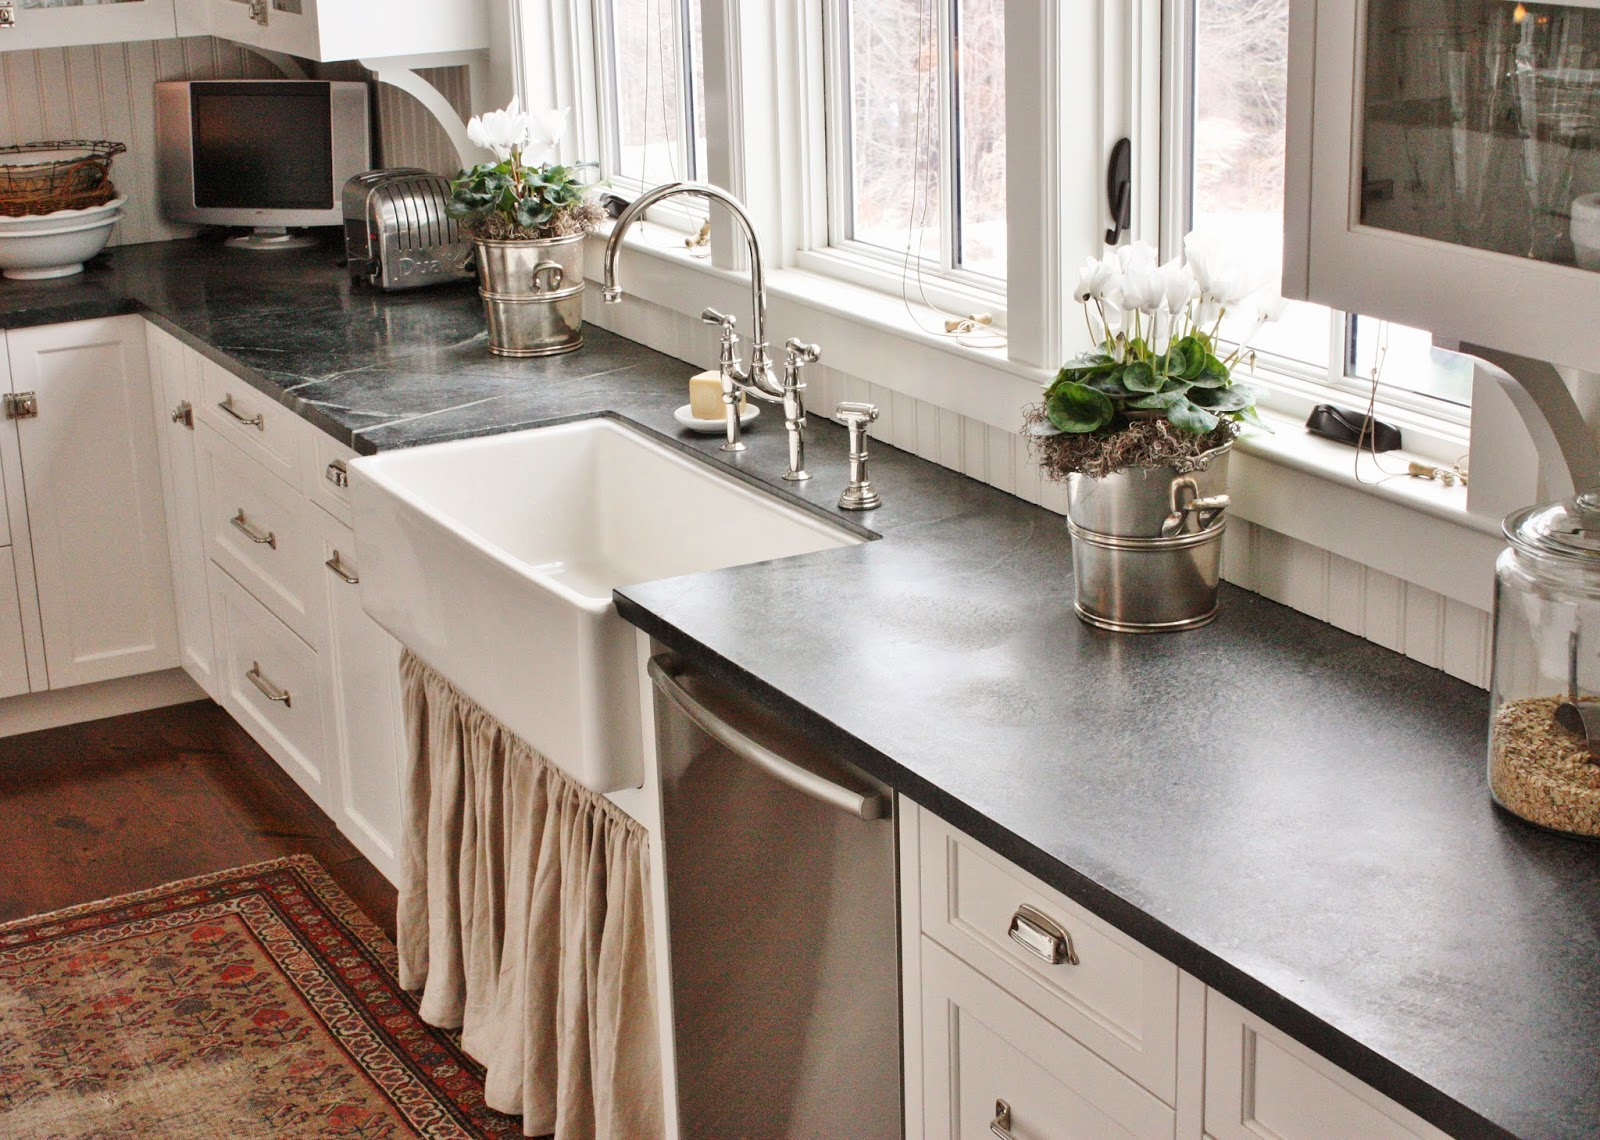 Uncategorized Soapstone Kitchen Countertops for the love of a house soapstone soapstone